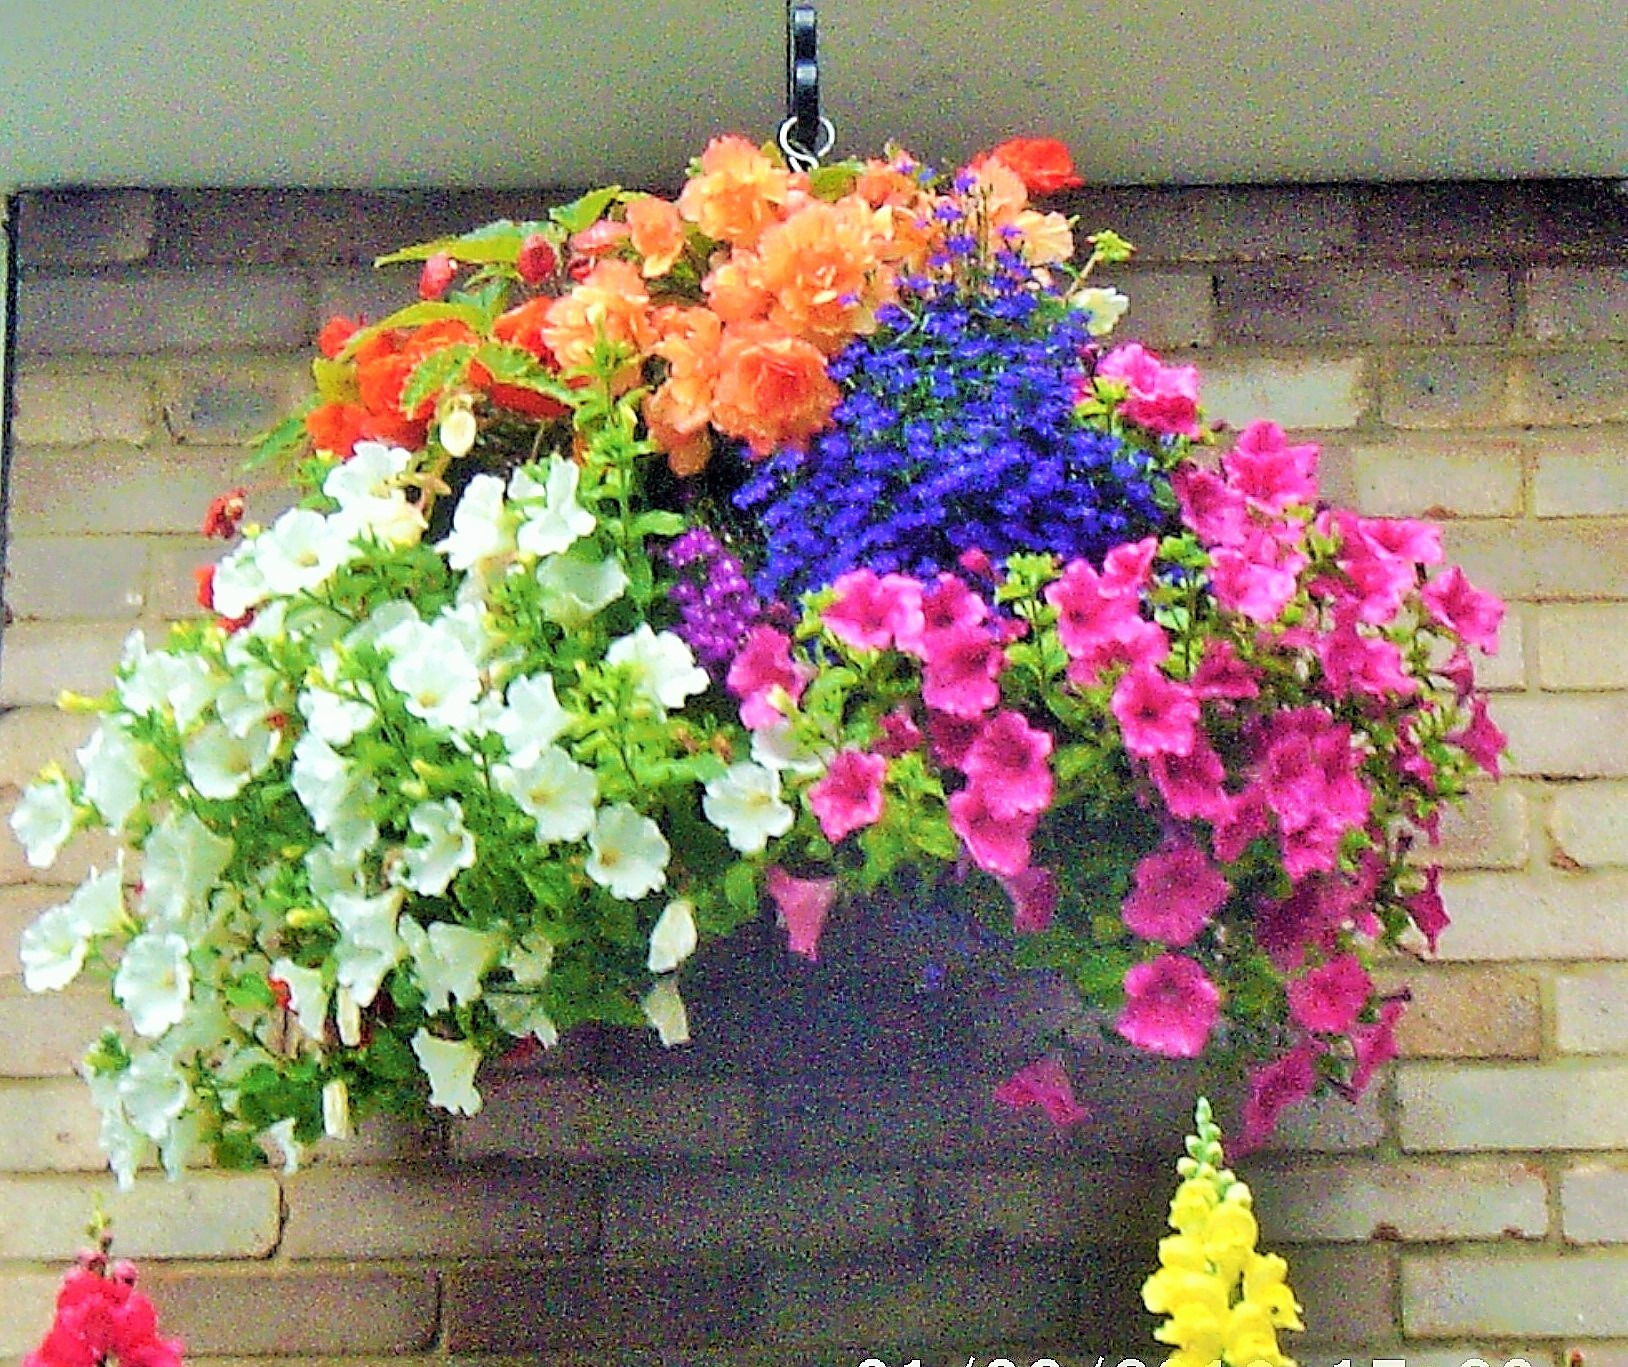 One of my hanging baskets.